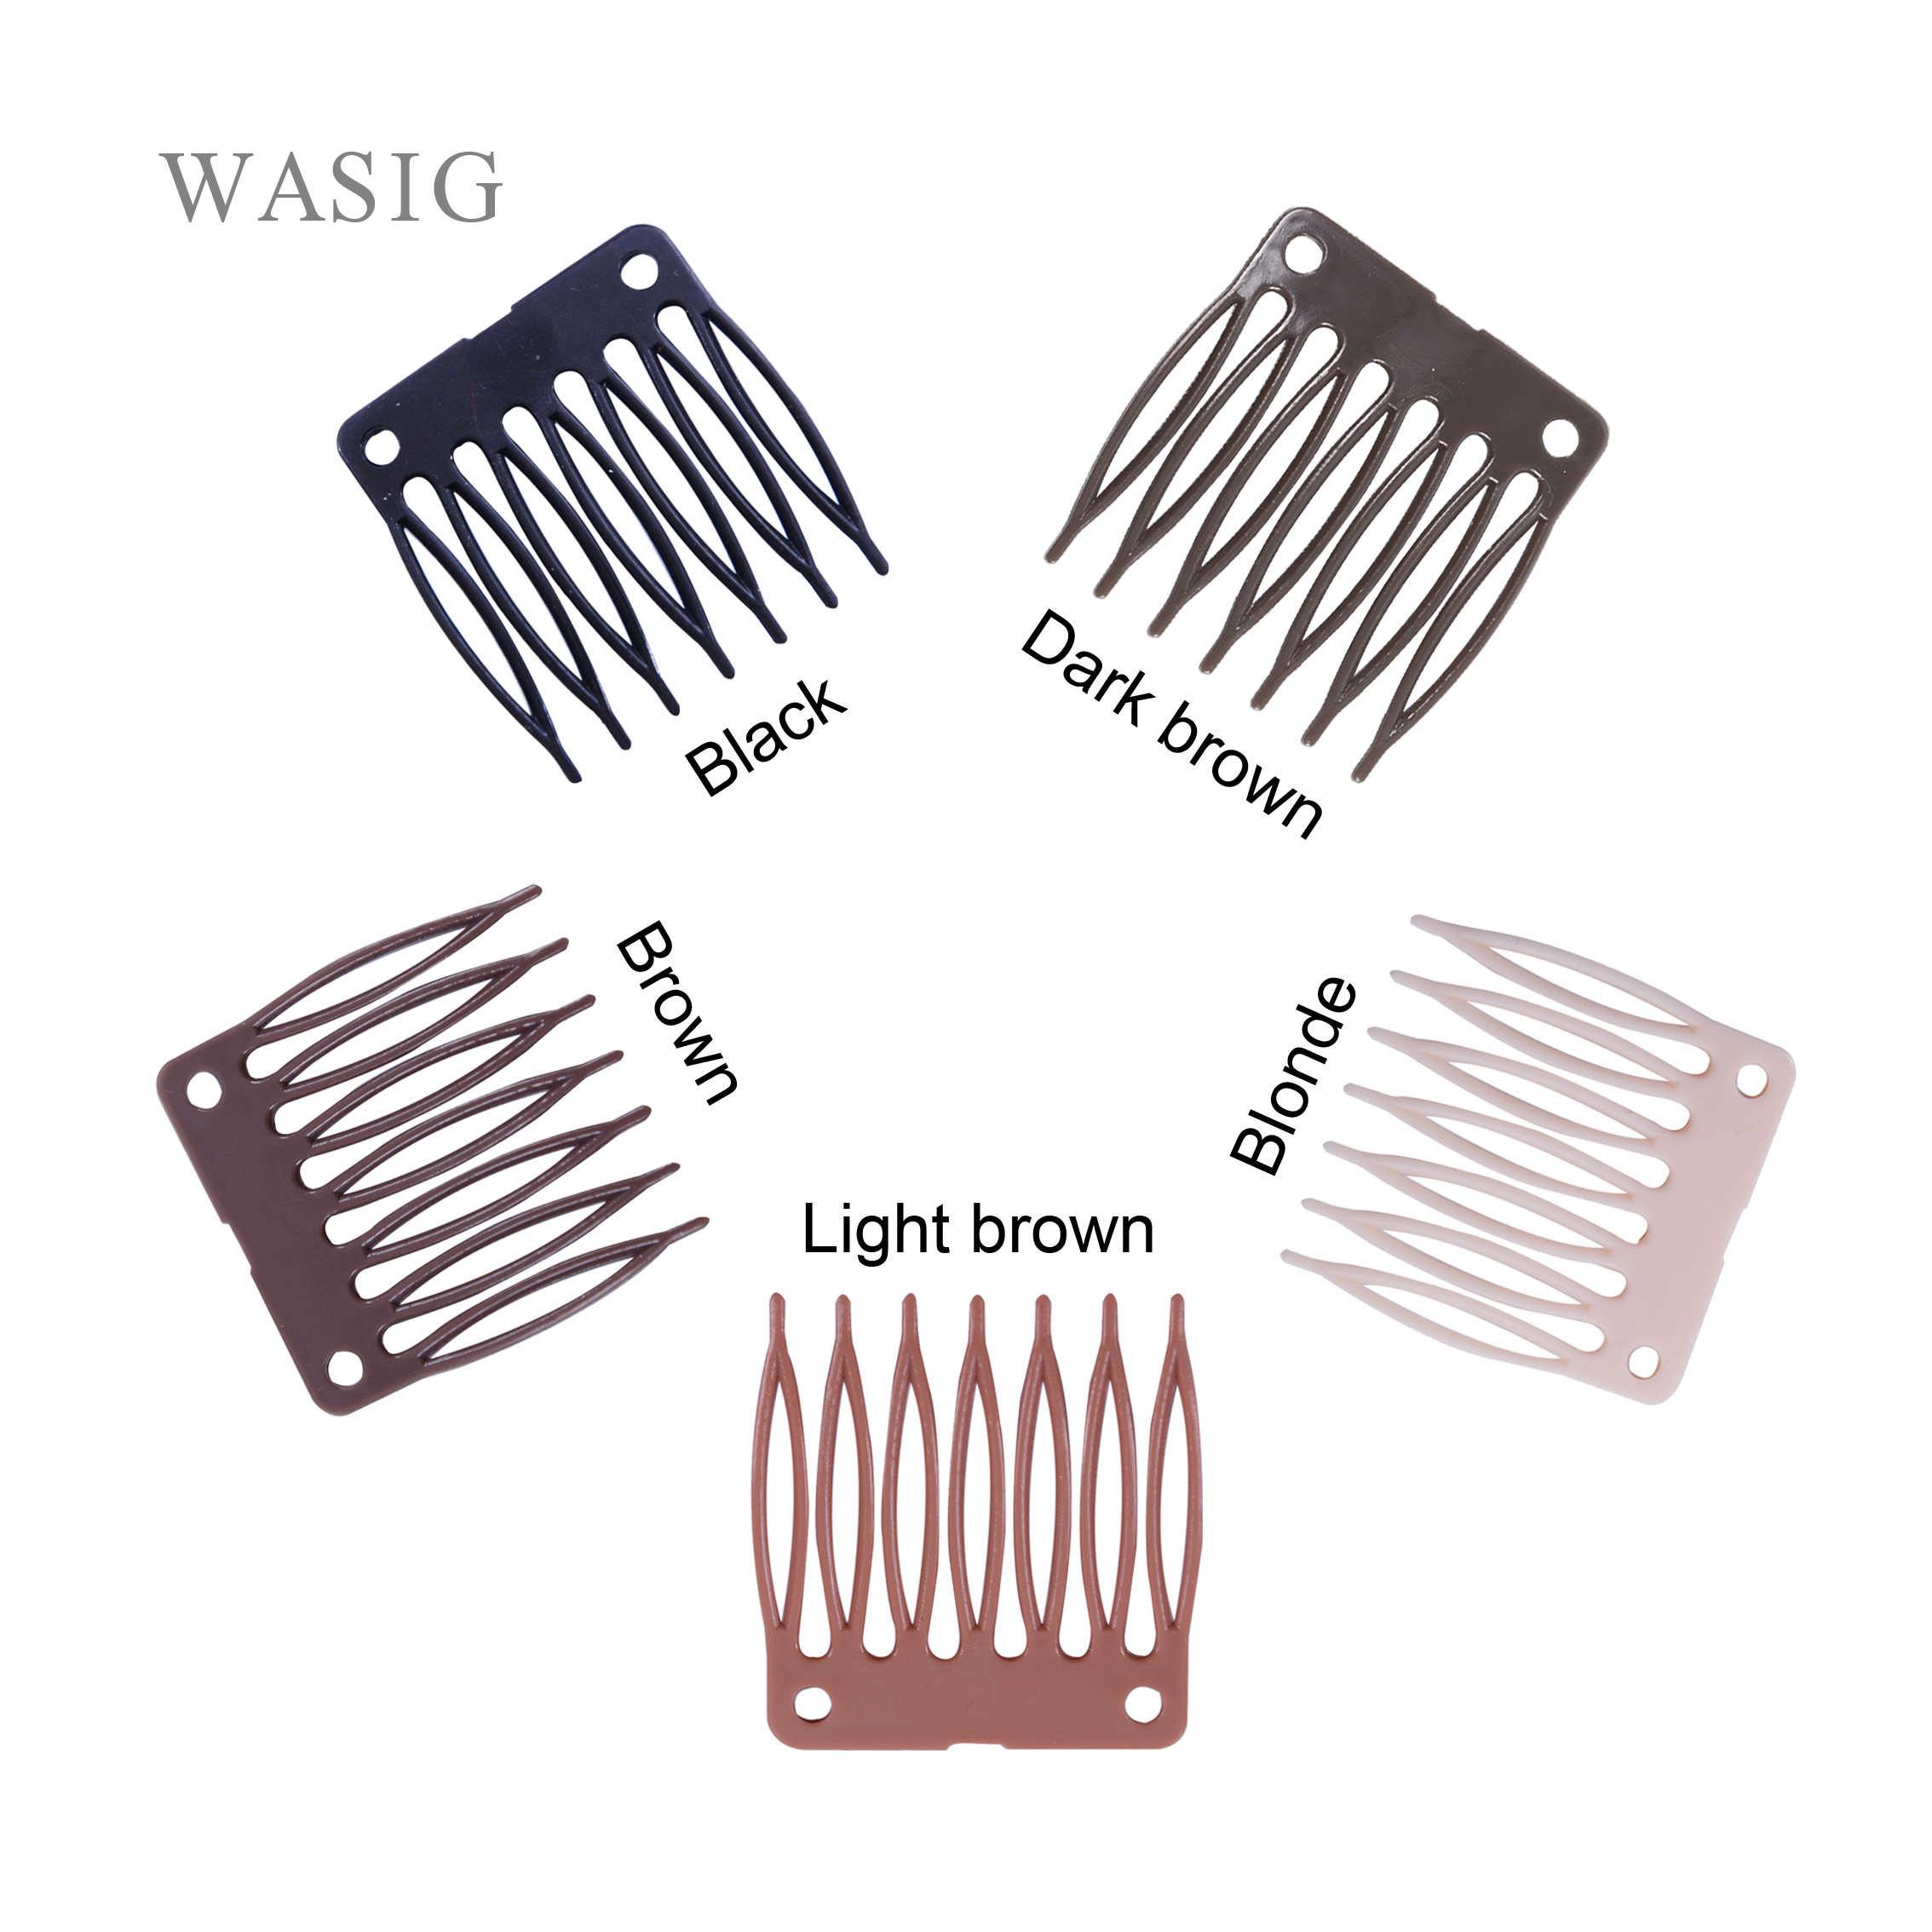 50 Pcs/lot Plastic Wig Clips And Combs For Making Wigs Full Lace /lace Front Black Brown Color Many In Stock Wholesale